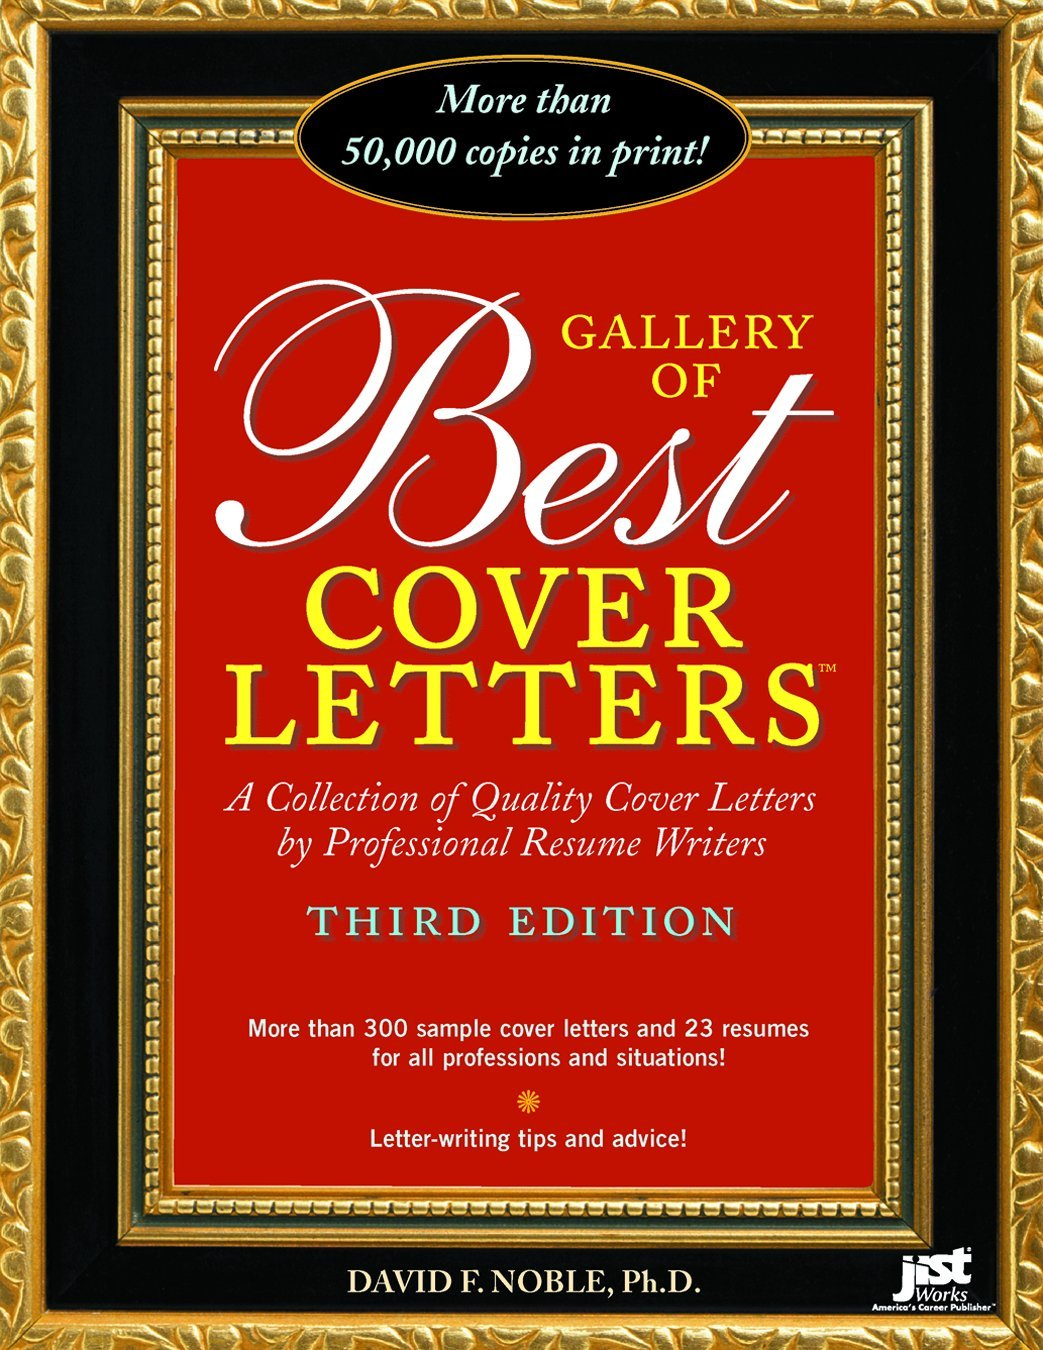 Gallery Of Best Cover Letters Collection Of Quality Cover Letters By Professional Resume Writers Noble David F 9781593574253 Amazon Com Books